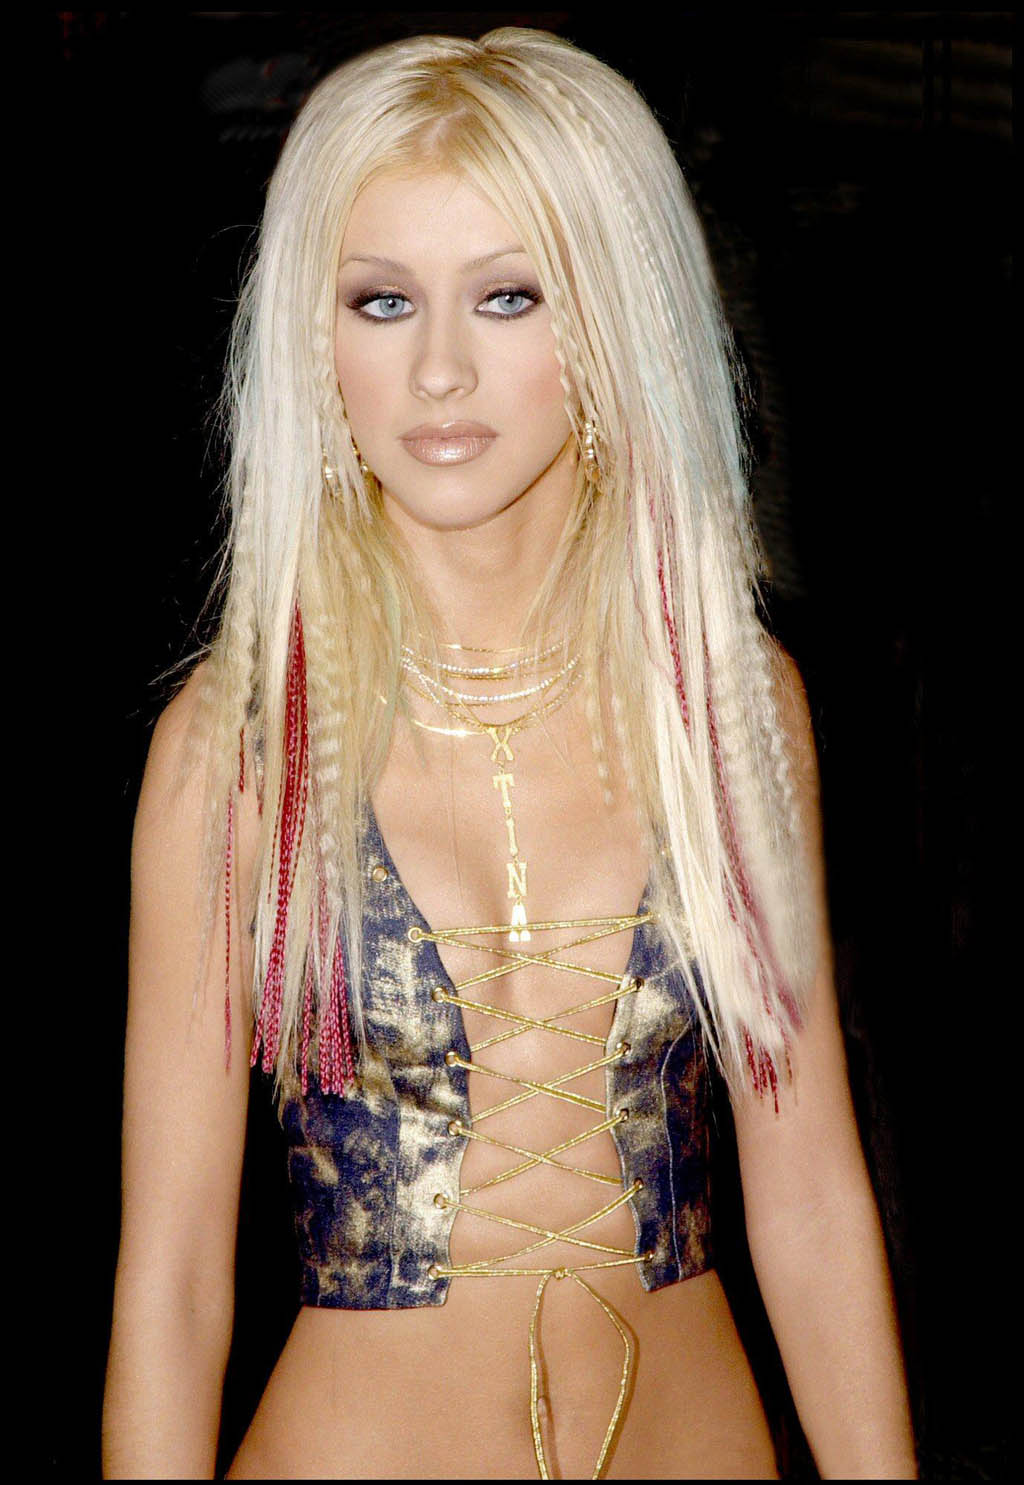 Christina Aguilera Images, Videos and